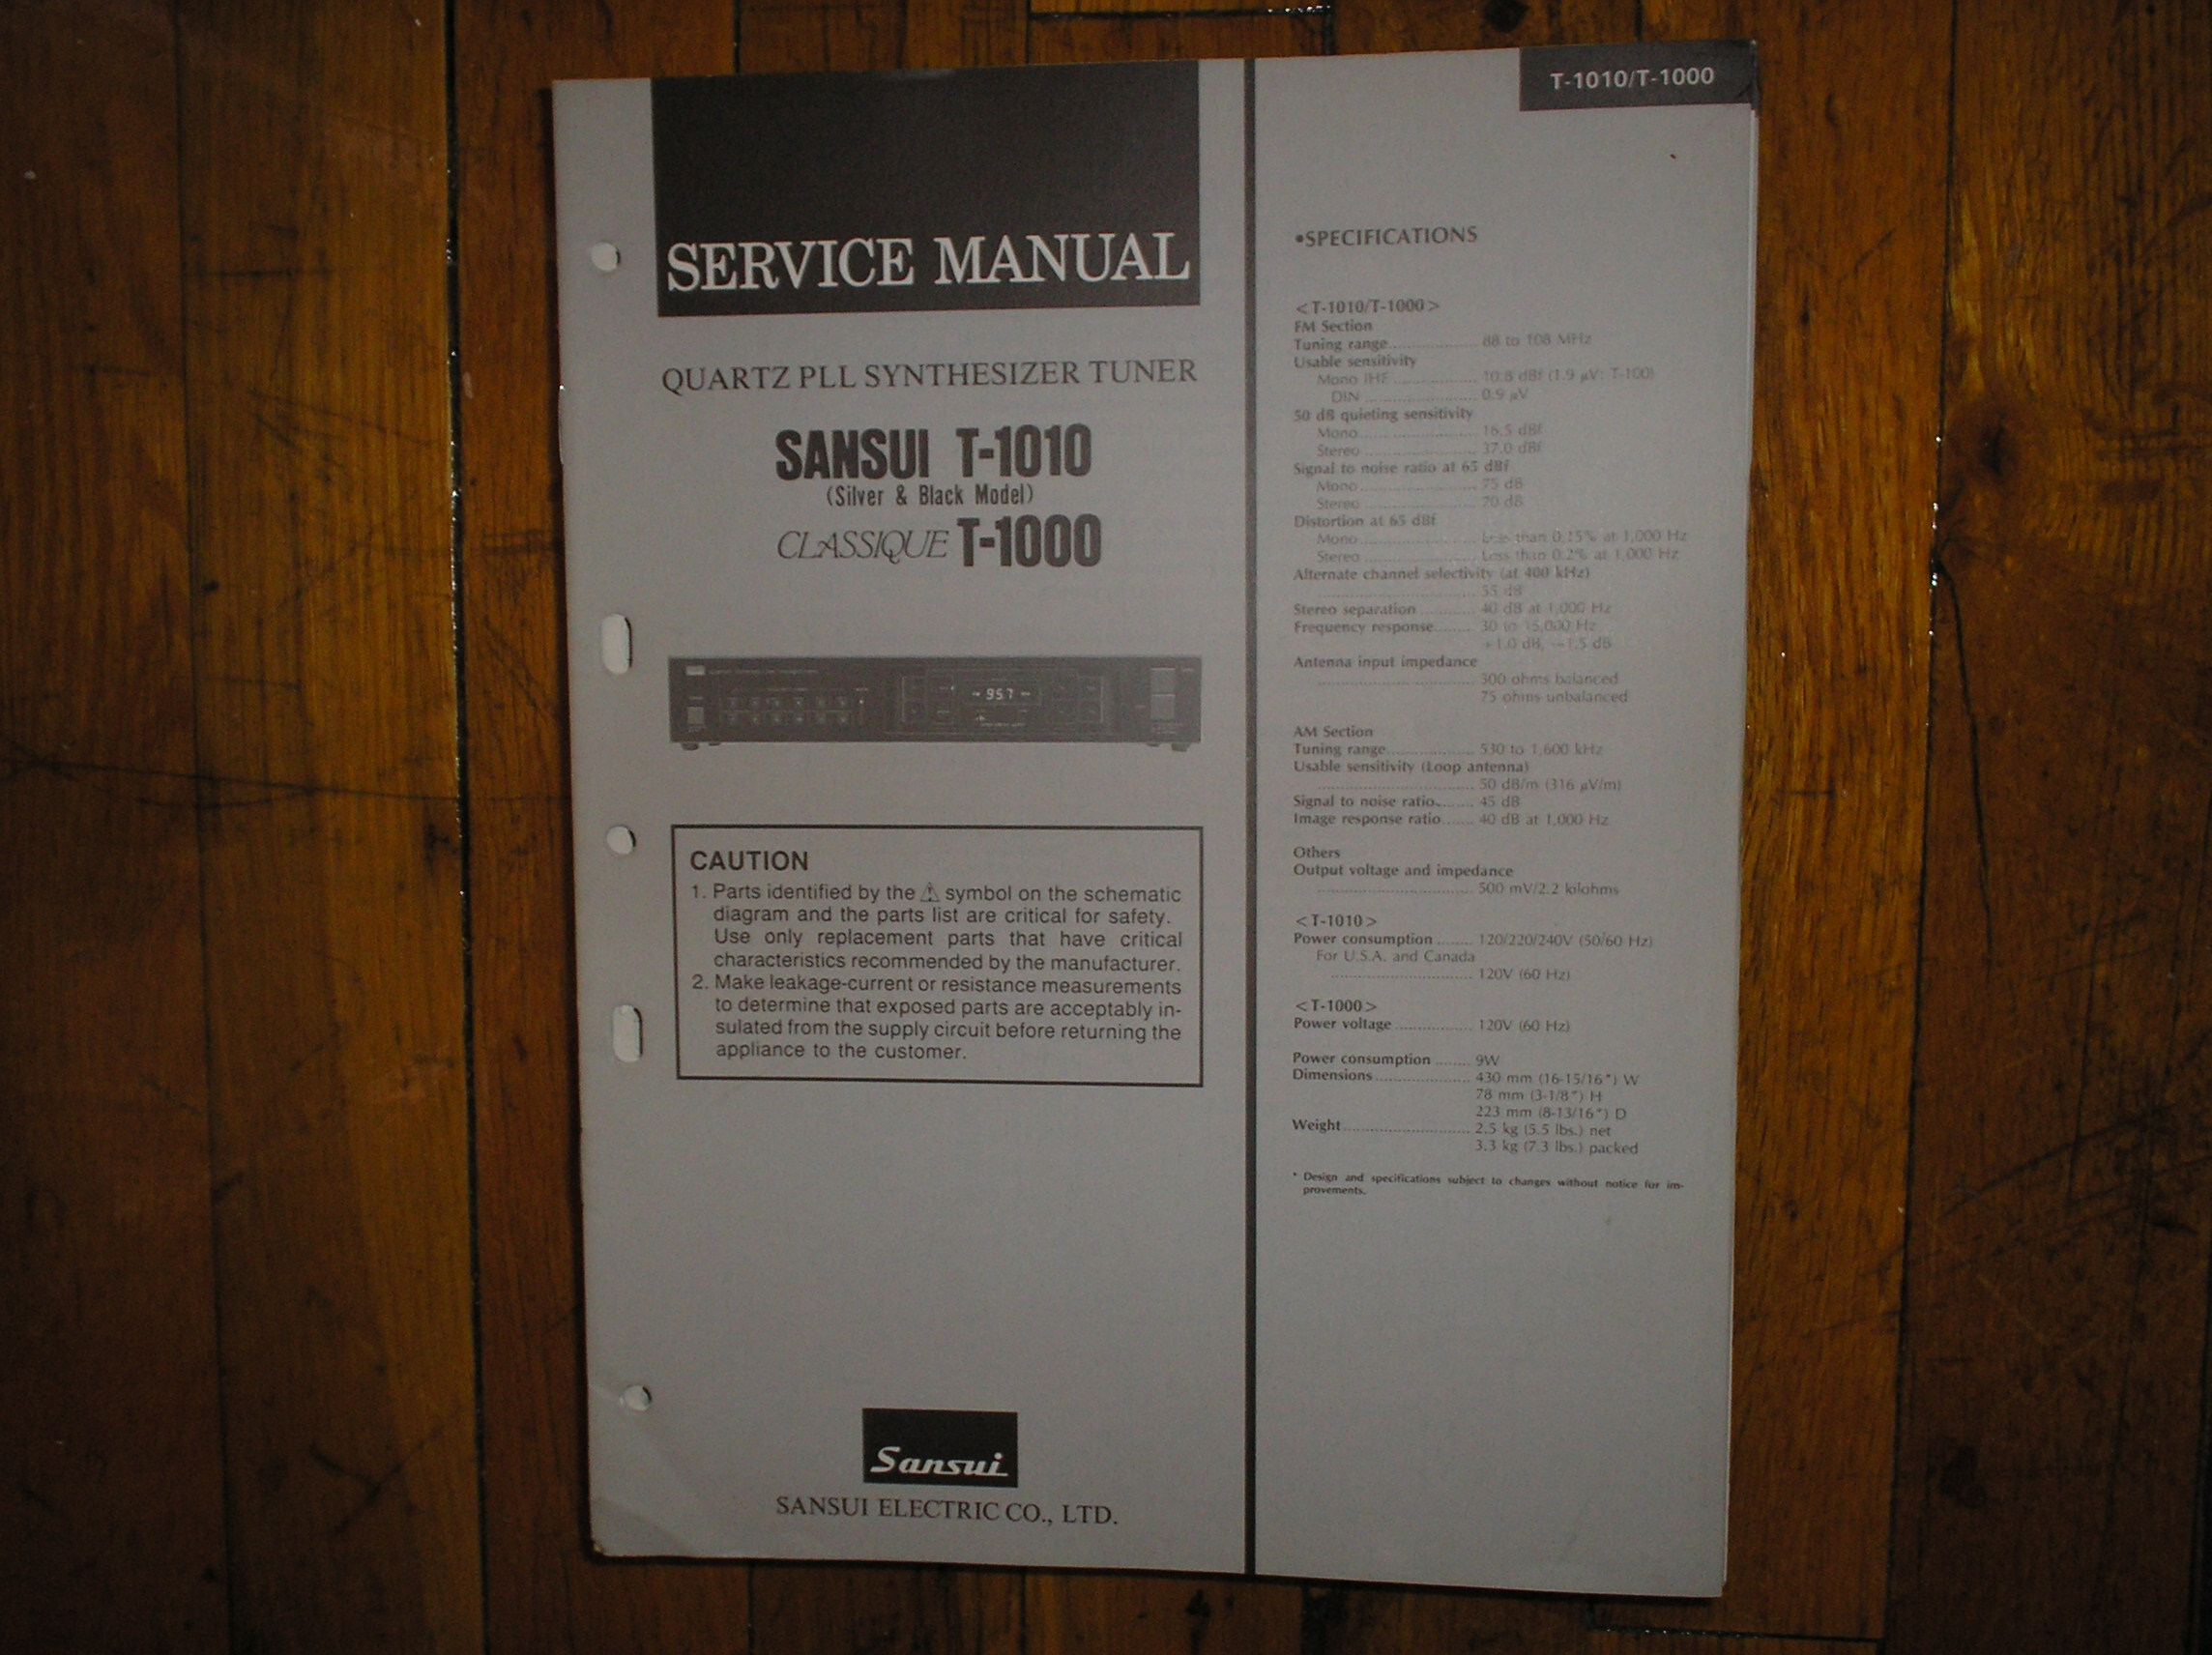 T-1000 T-1010 Tuner Service Manual